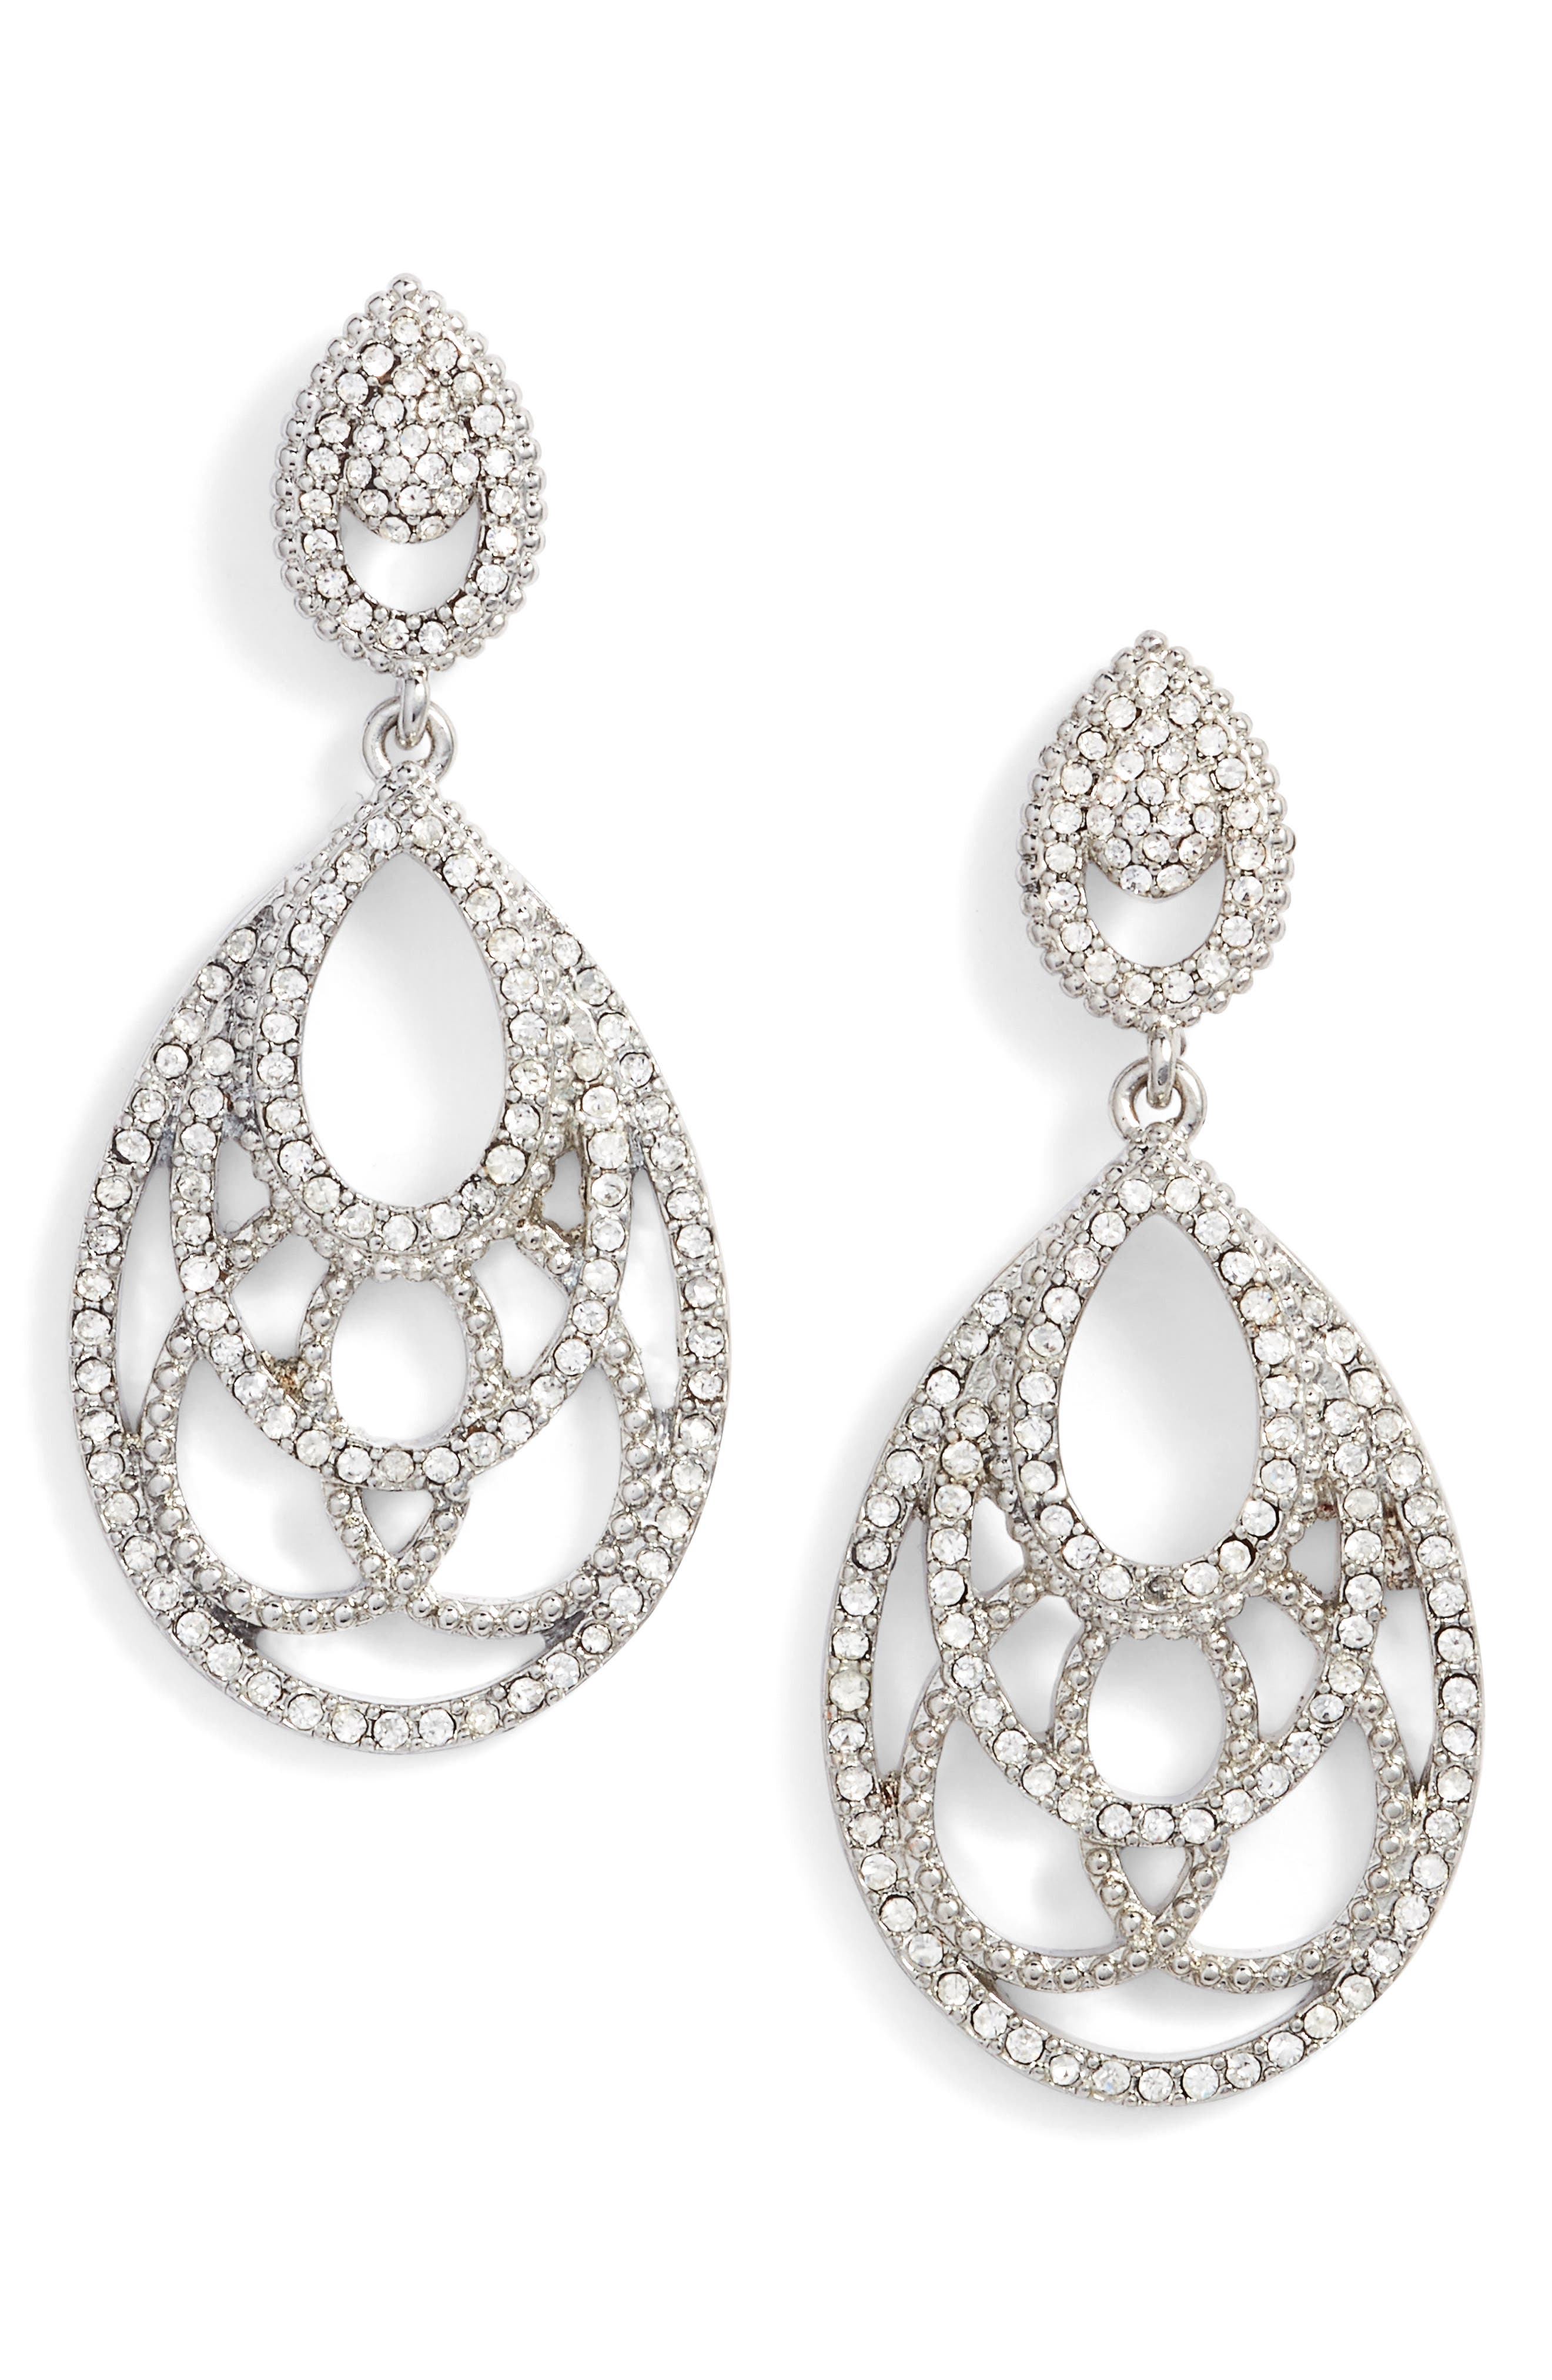 Openwork Crystal Drop Earrings,                         Main,                         color, Crystal/ Silver